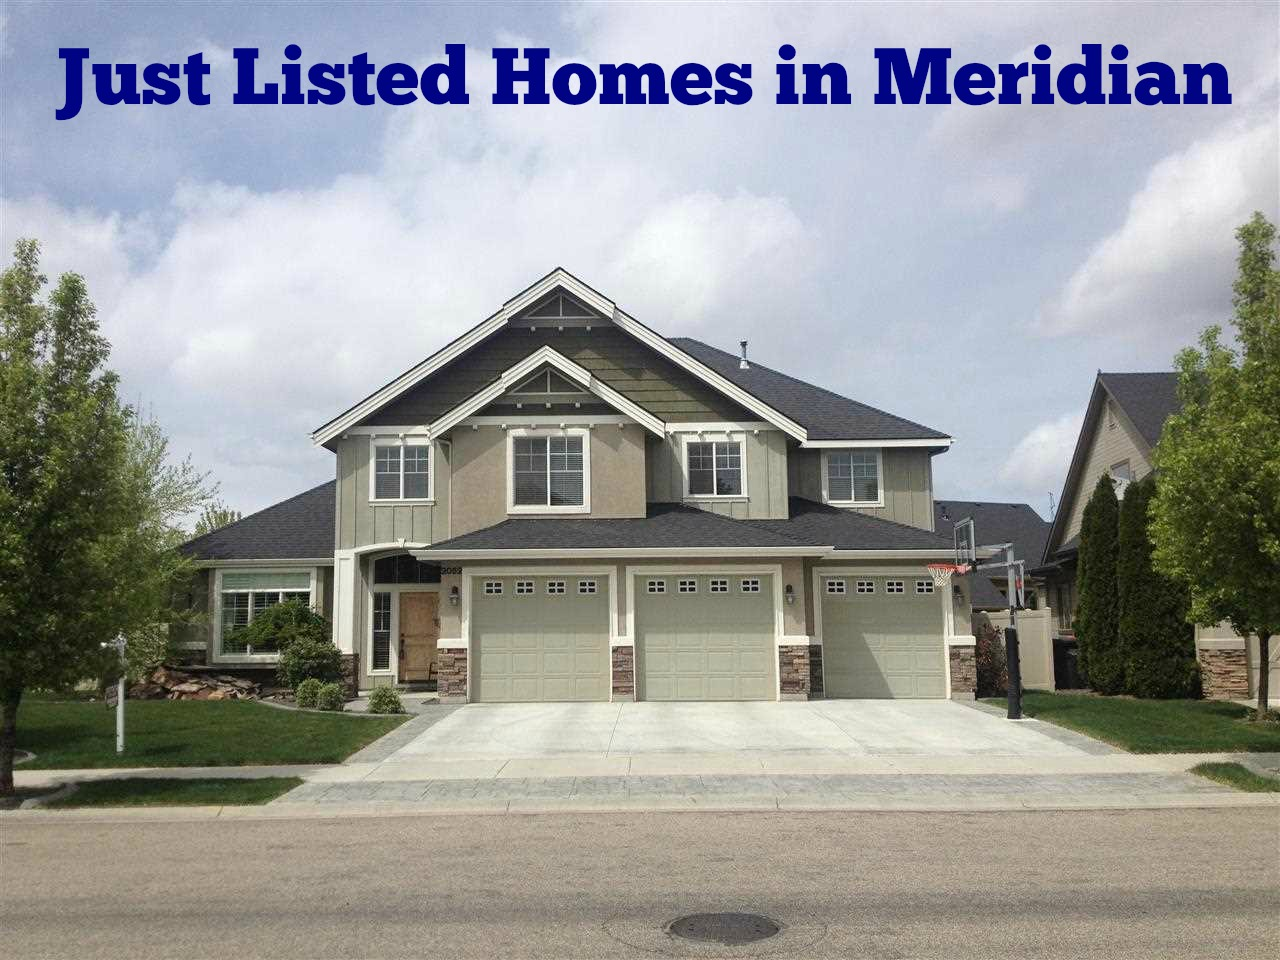 Just Listed Homes in Meridian, Idaho